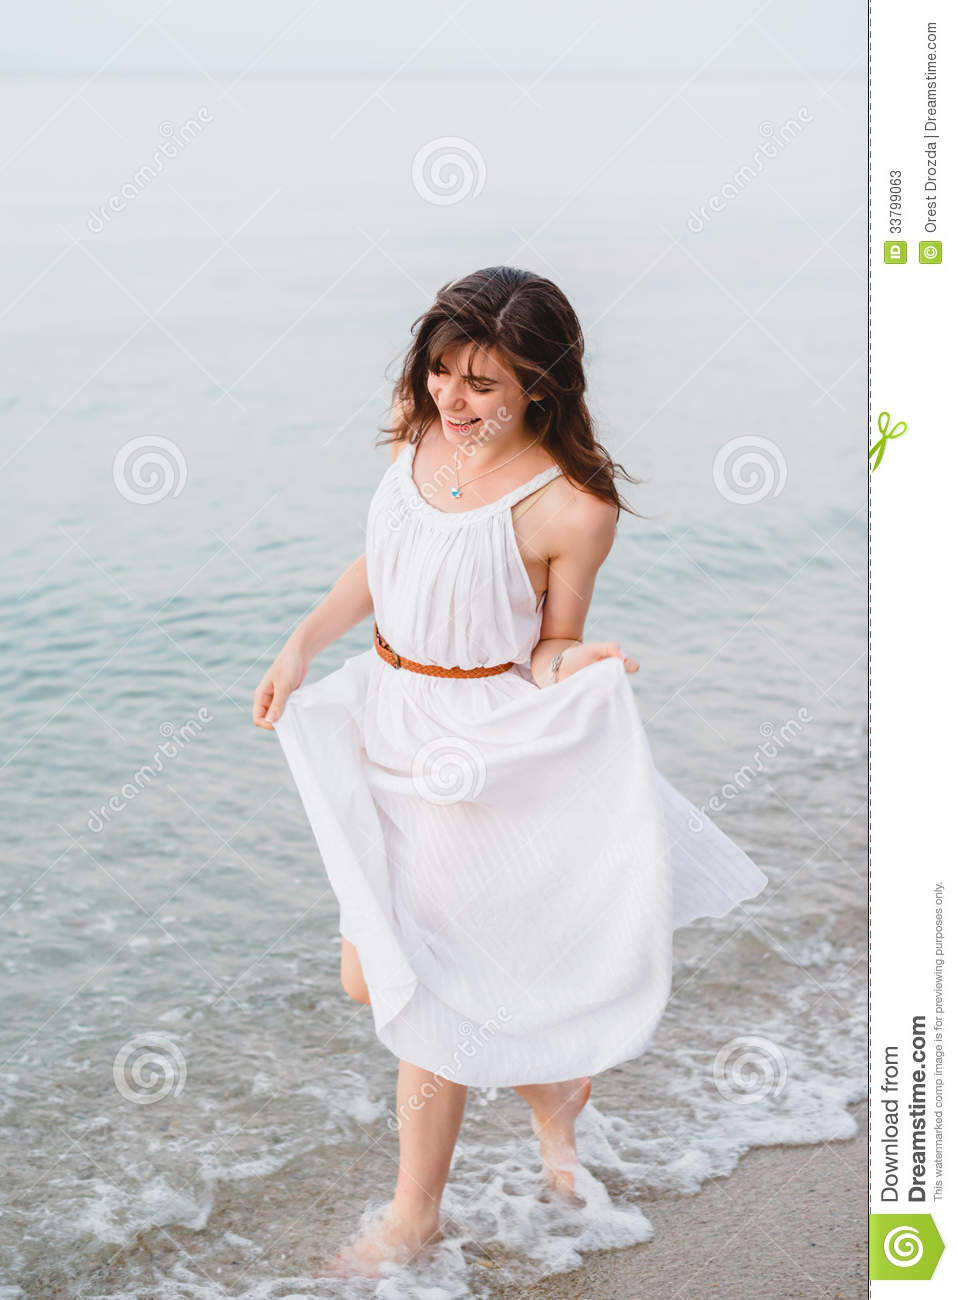 122d6470f3fc A Happy Smiling Girl In Running On The Sea Shore Stock Image - Image ...